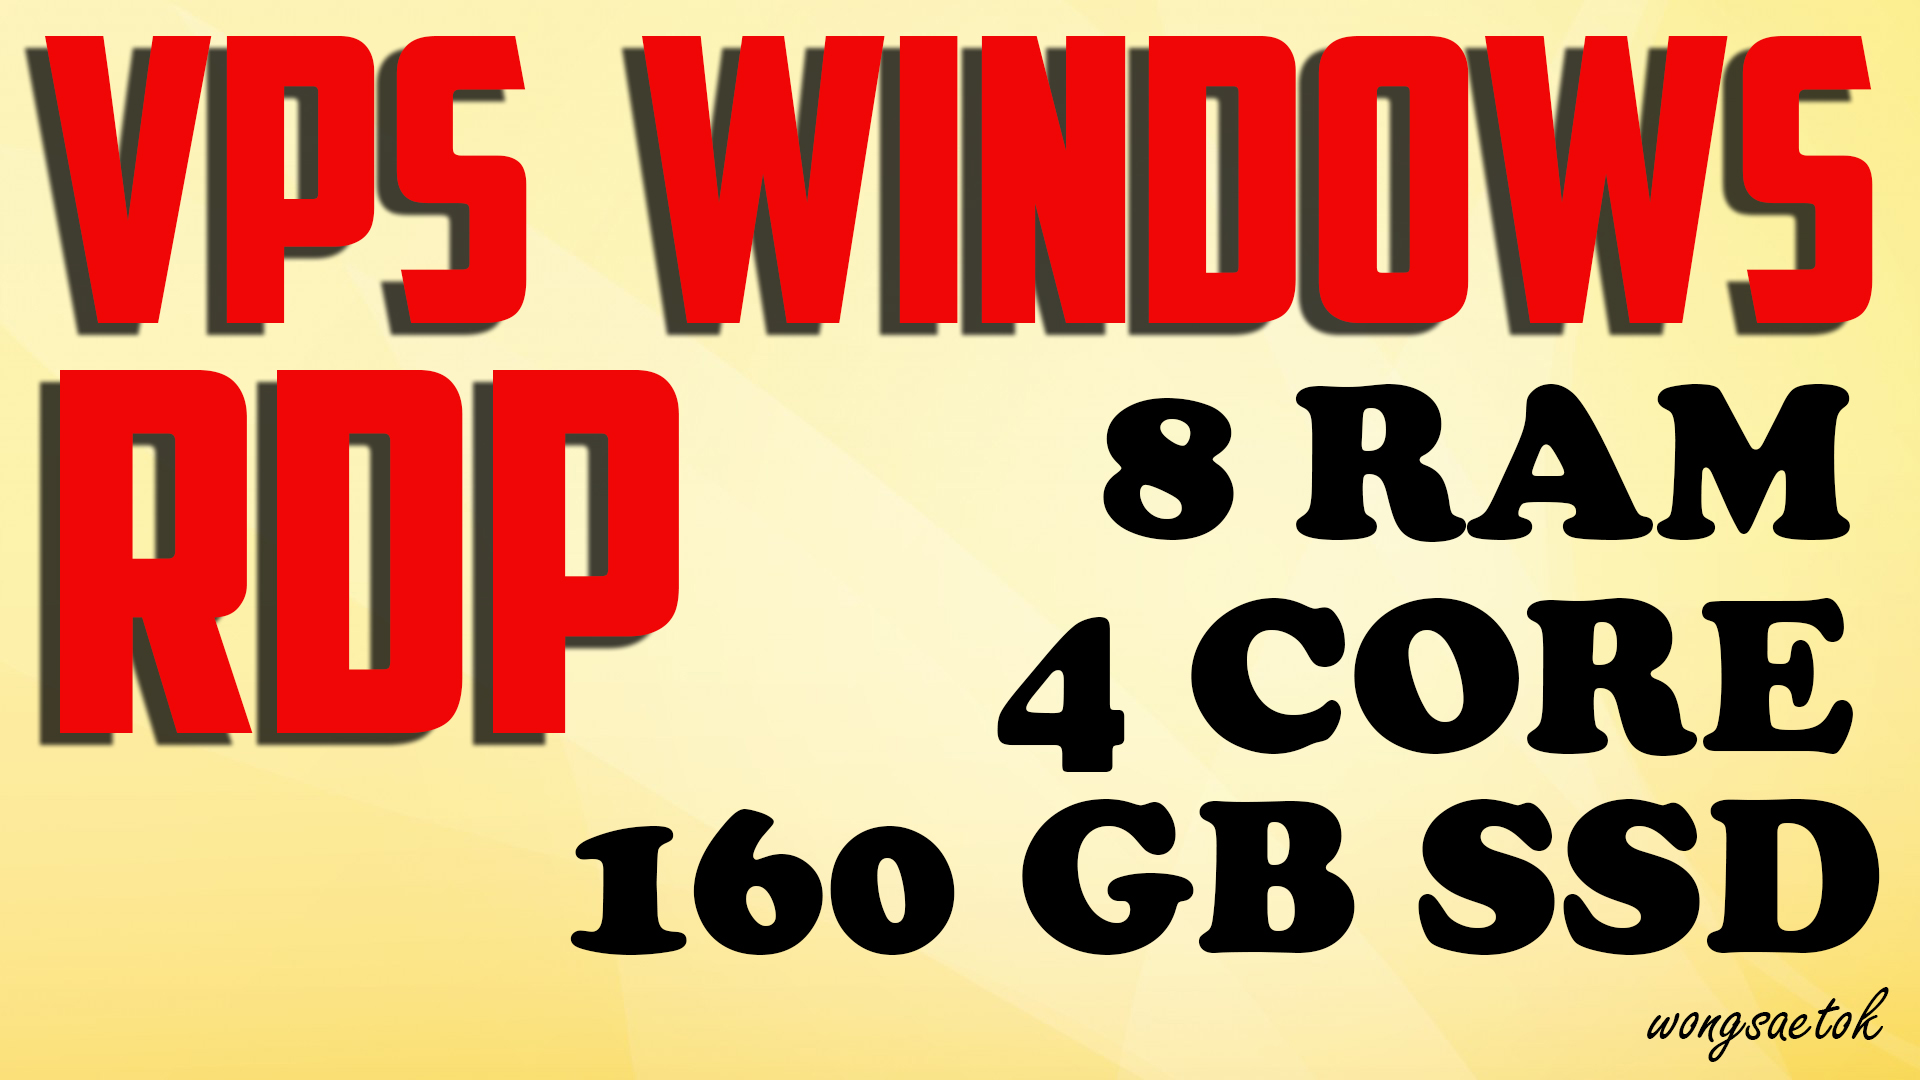 VPS Windows RDP 8GB RAM 4 Core 160GB SSD